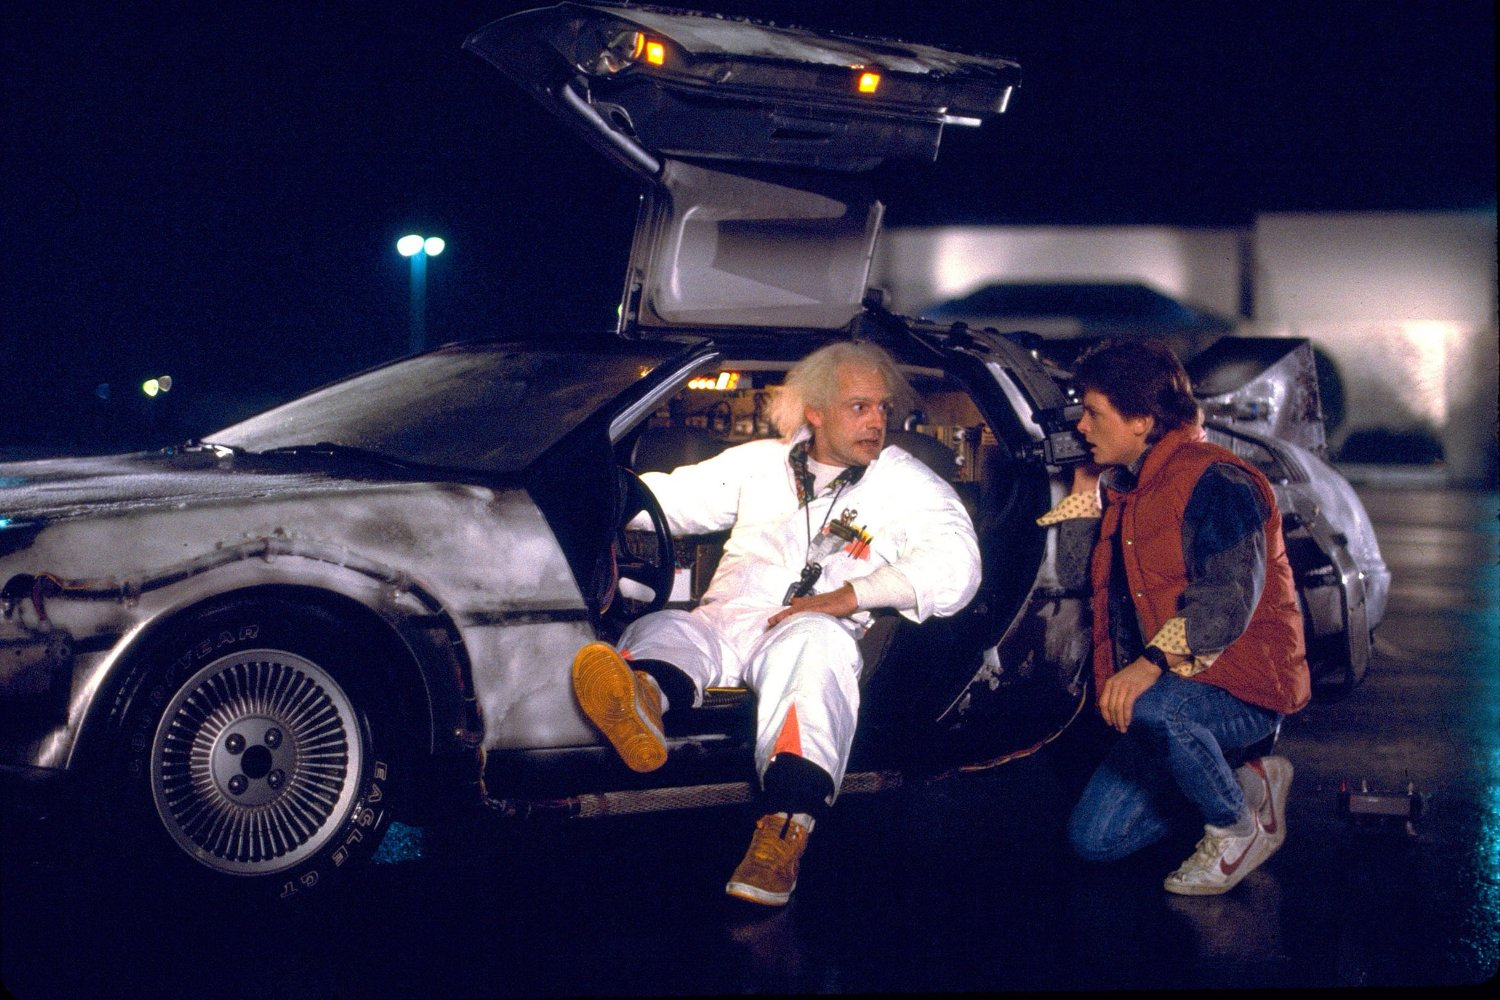 Doc Brown (Christopher Lloyd) and Marty McFly (Michael J. Fox) with the DeLorean in Back to the Future (1985)